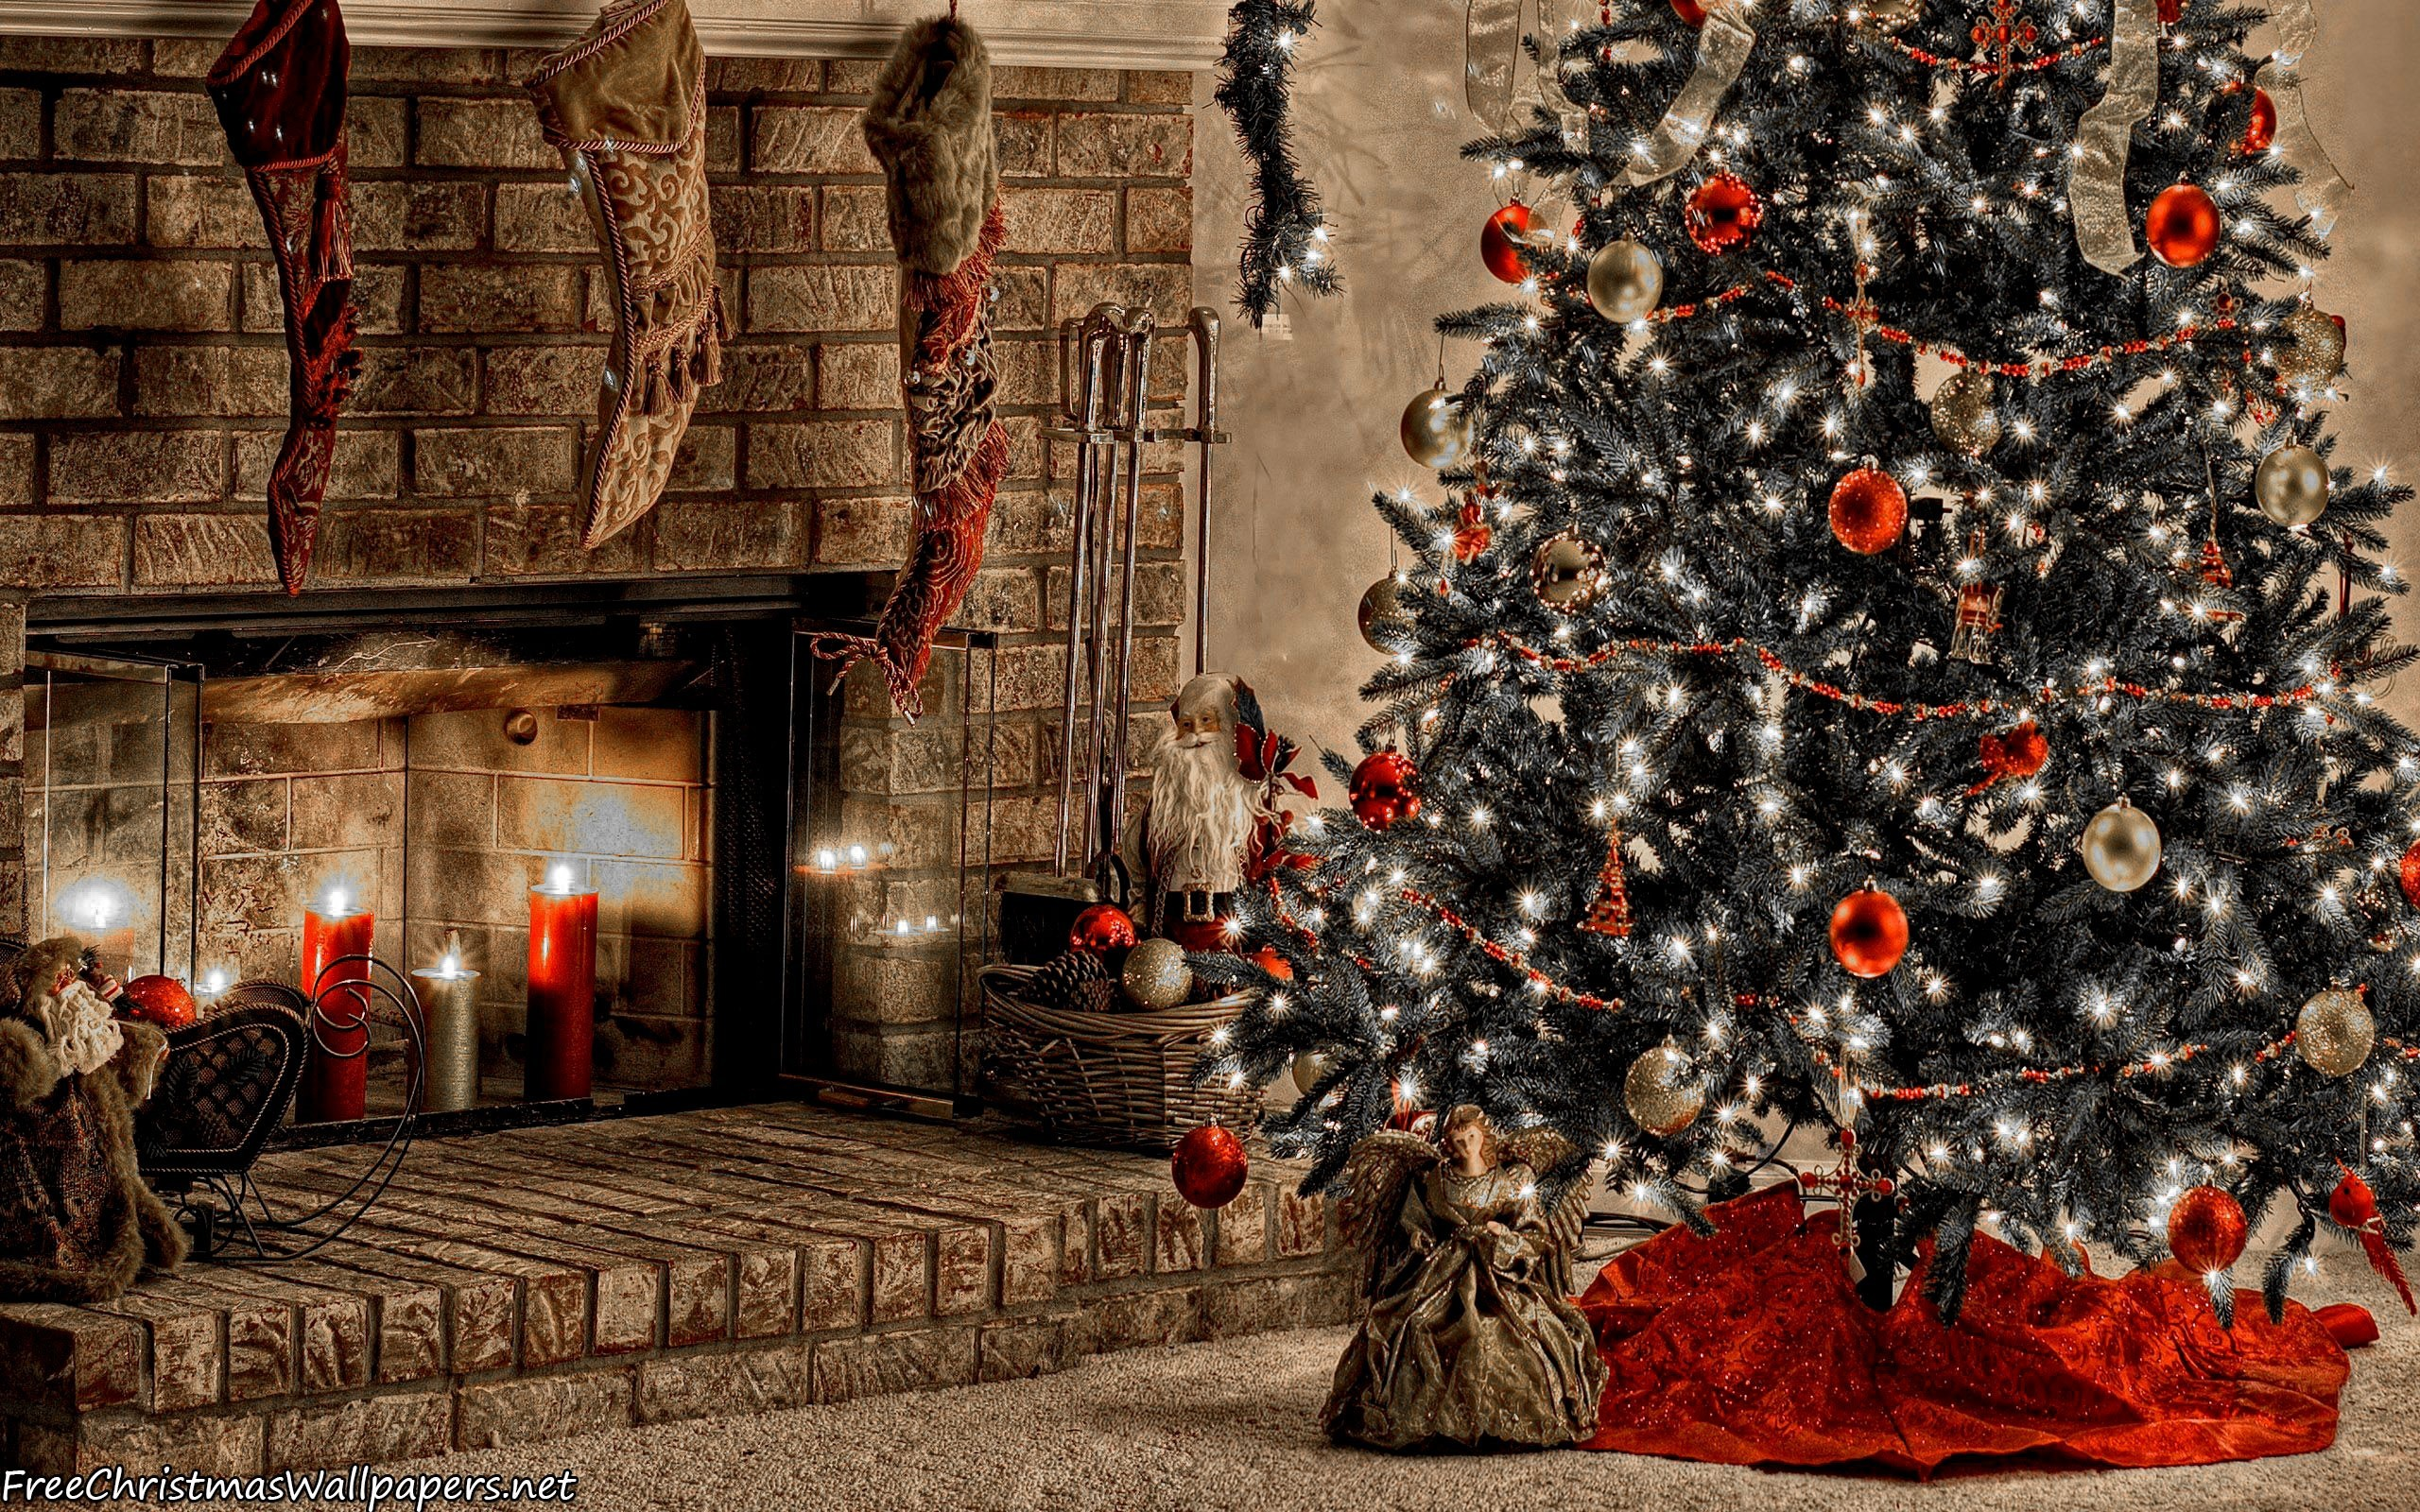 Res: 2560x1600, Download Warm Christmas Fireplace Wallpaper. Warm Christmas Fireplace